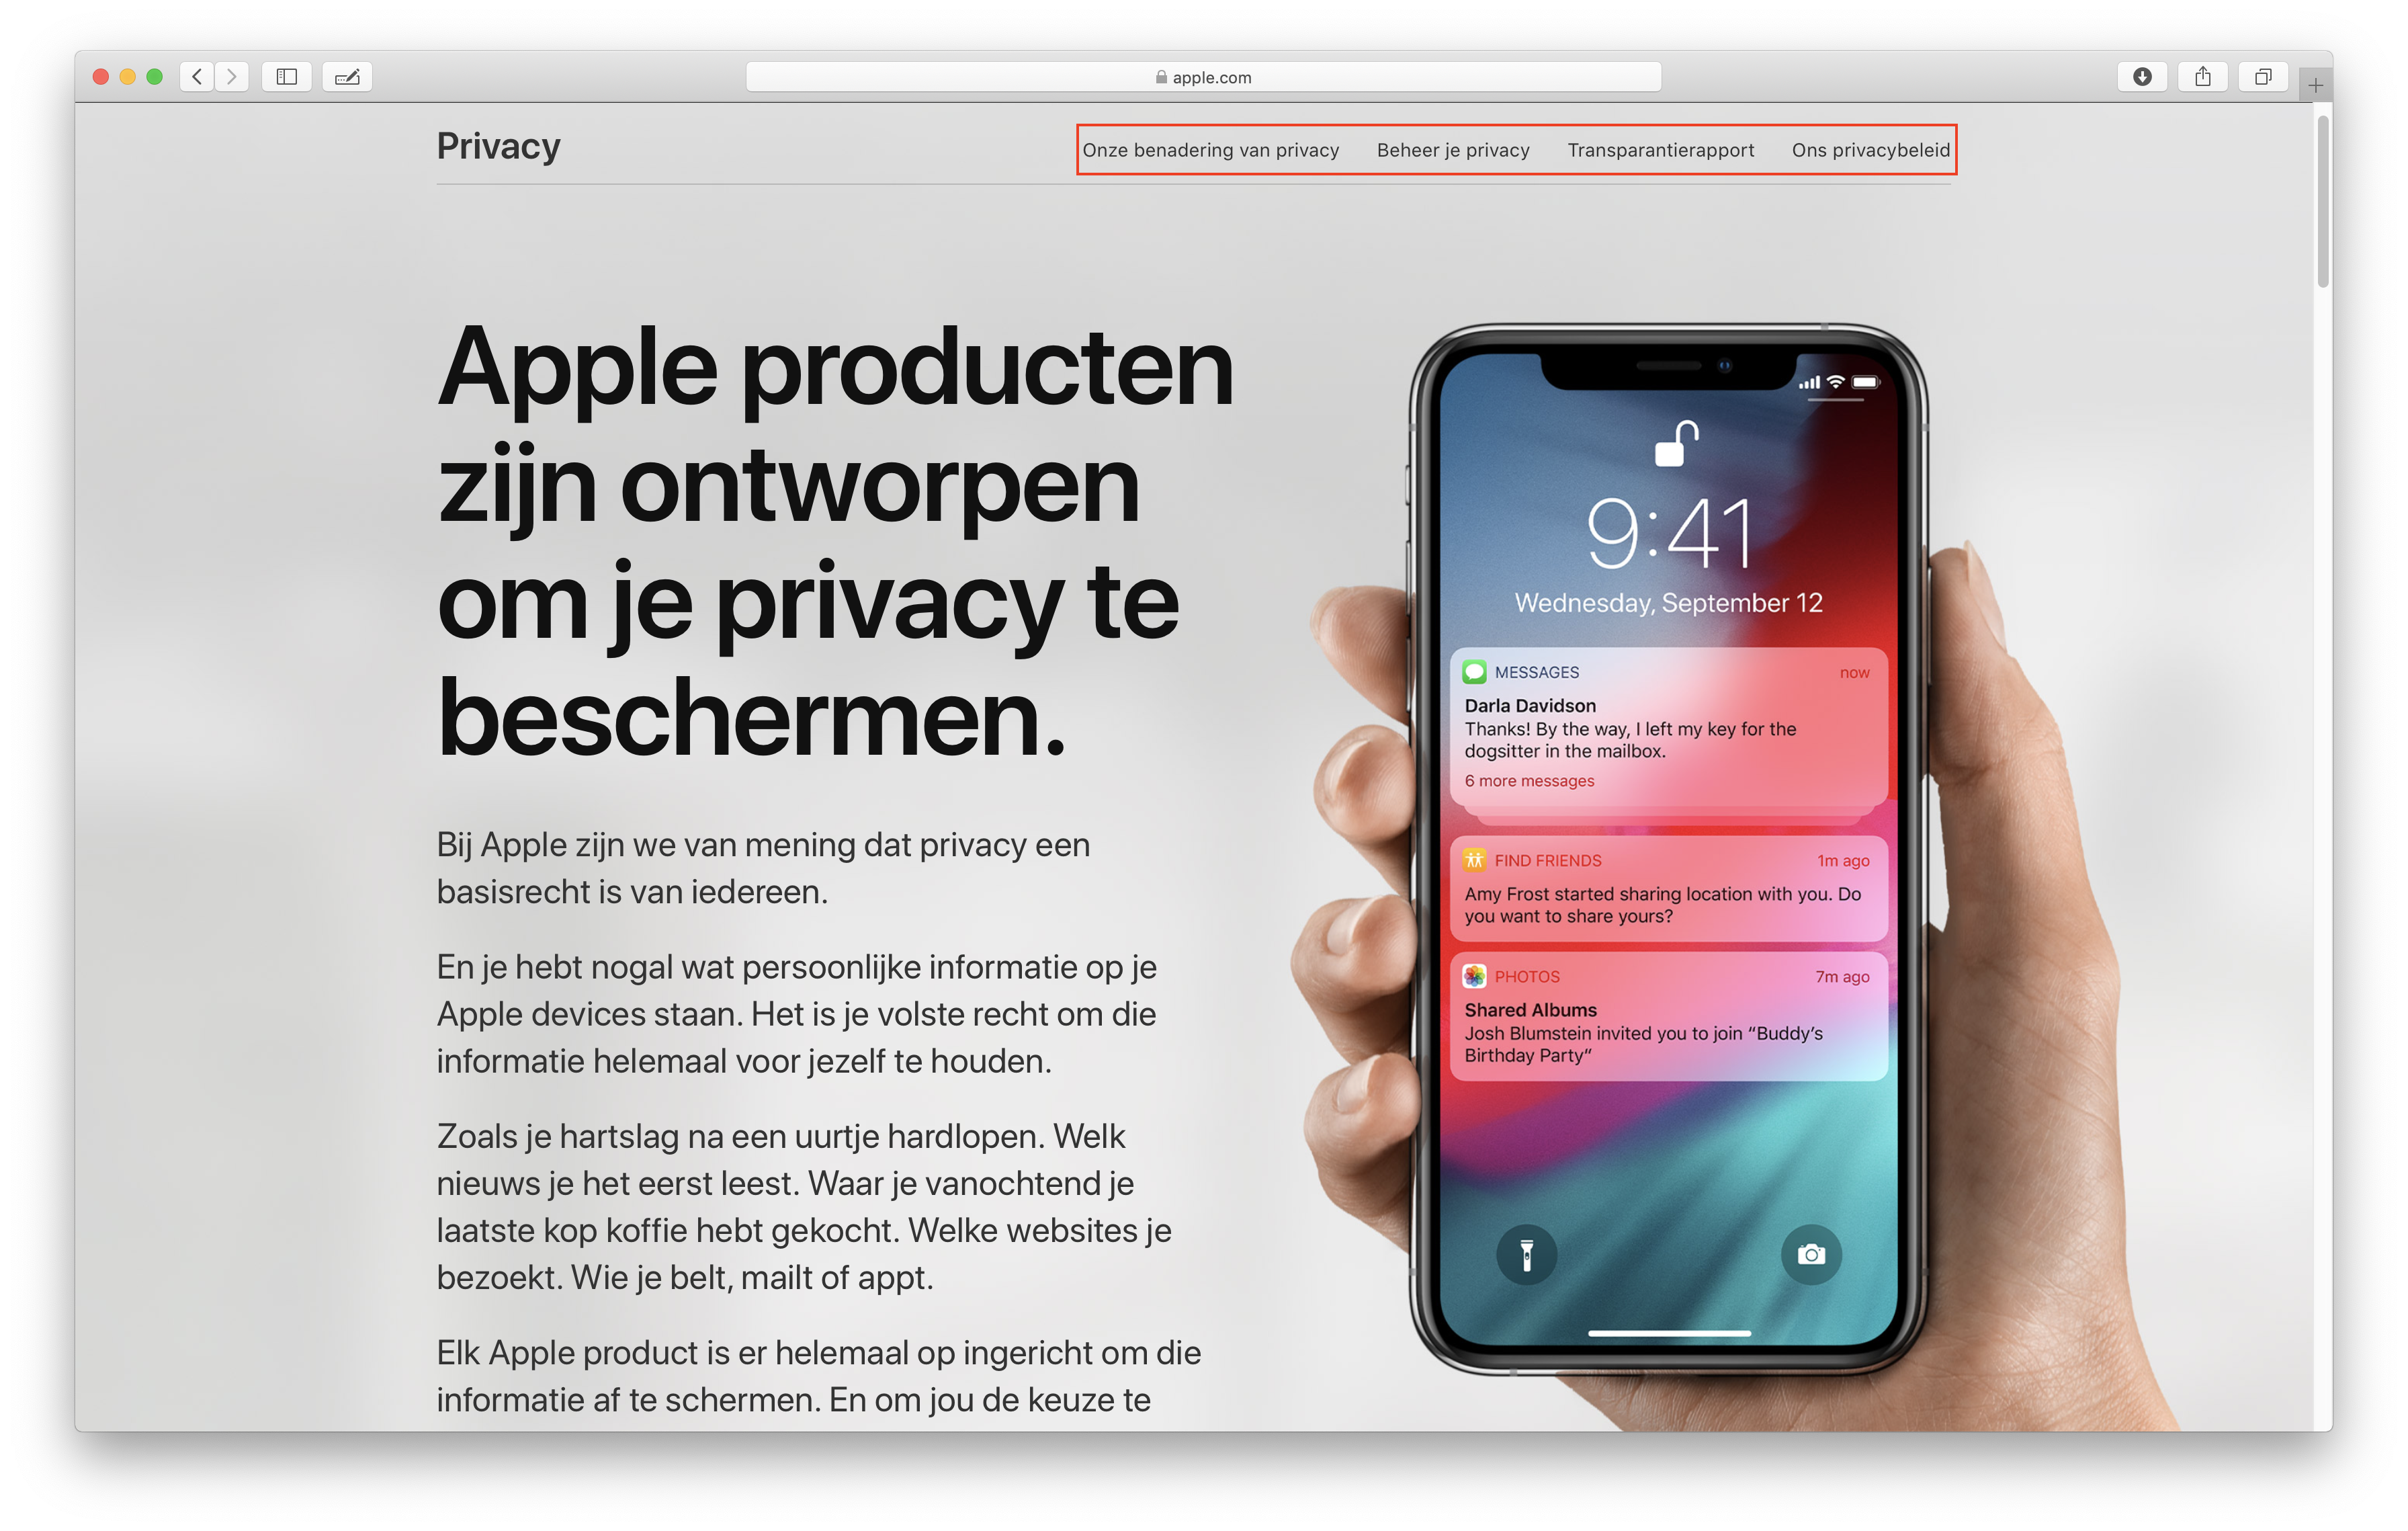 https://www.macfreak.nl/modules/news/images/zArt.ApplePrivacyMiniSite.png